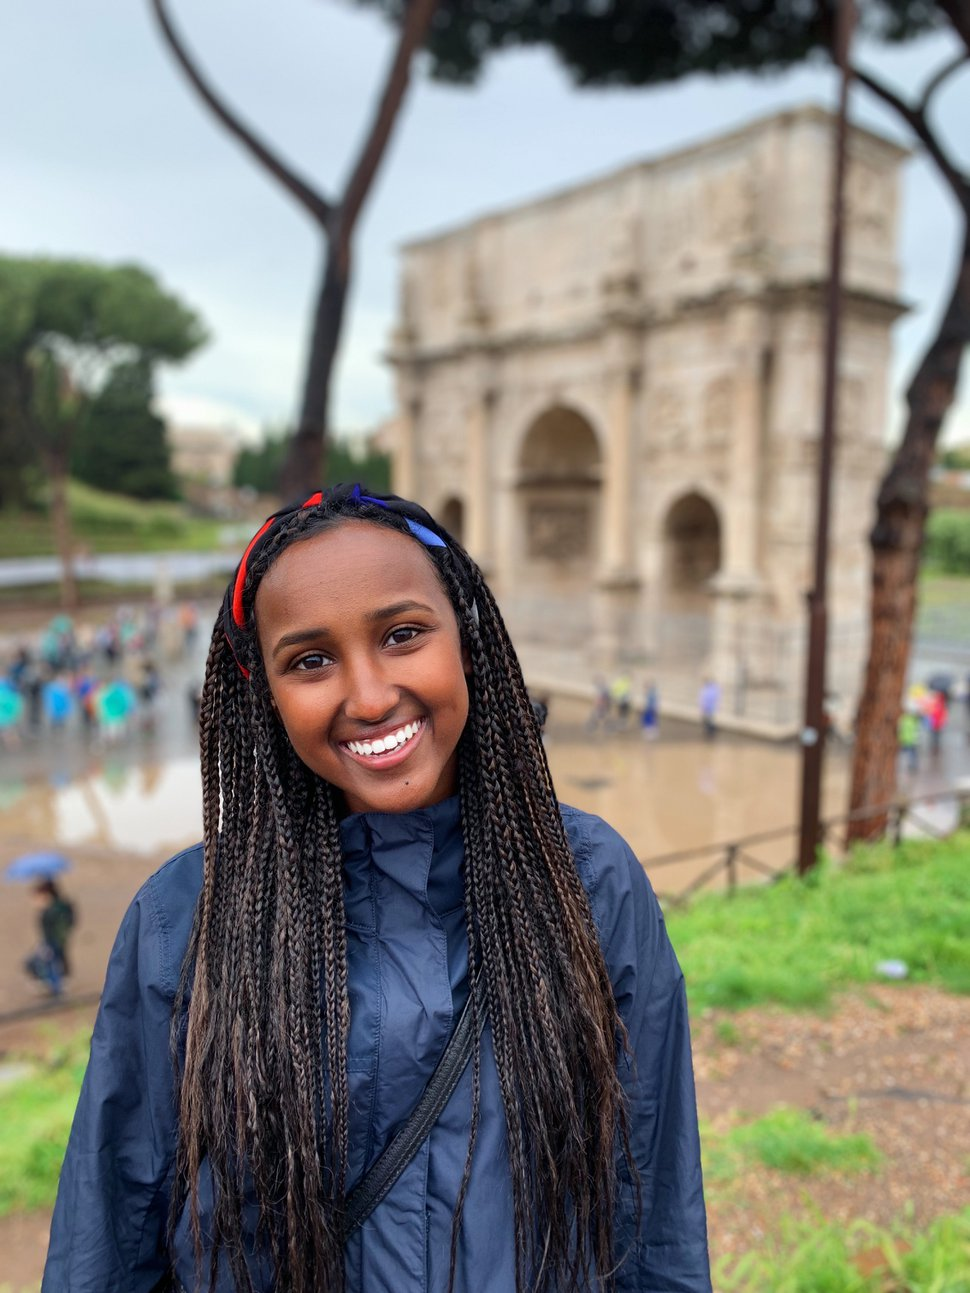 (Photo courtesy of Ladan Mohamed) Mohamed takes photos on a family trip to Rome to celebrate her college graduation in 2019.